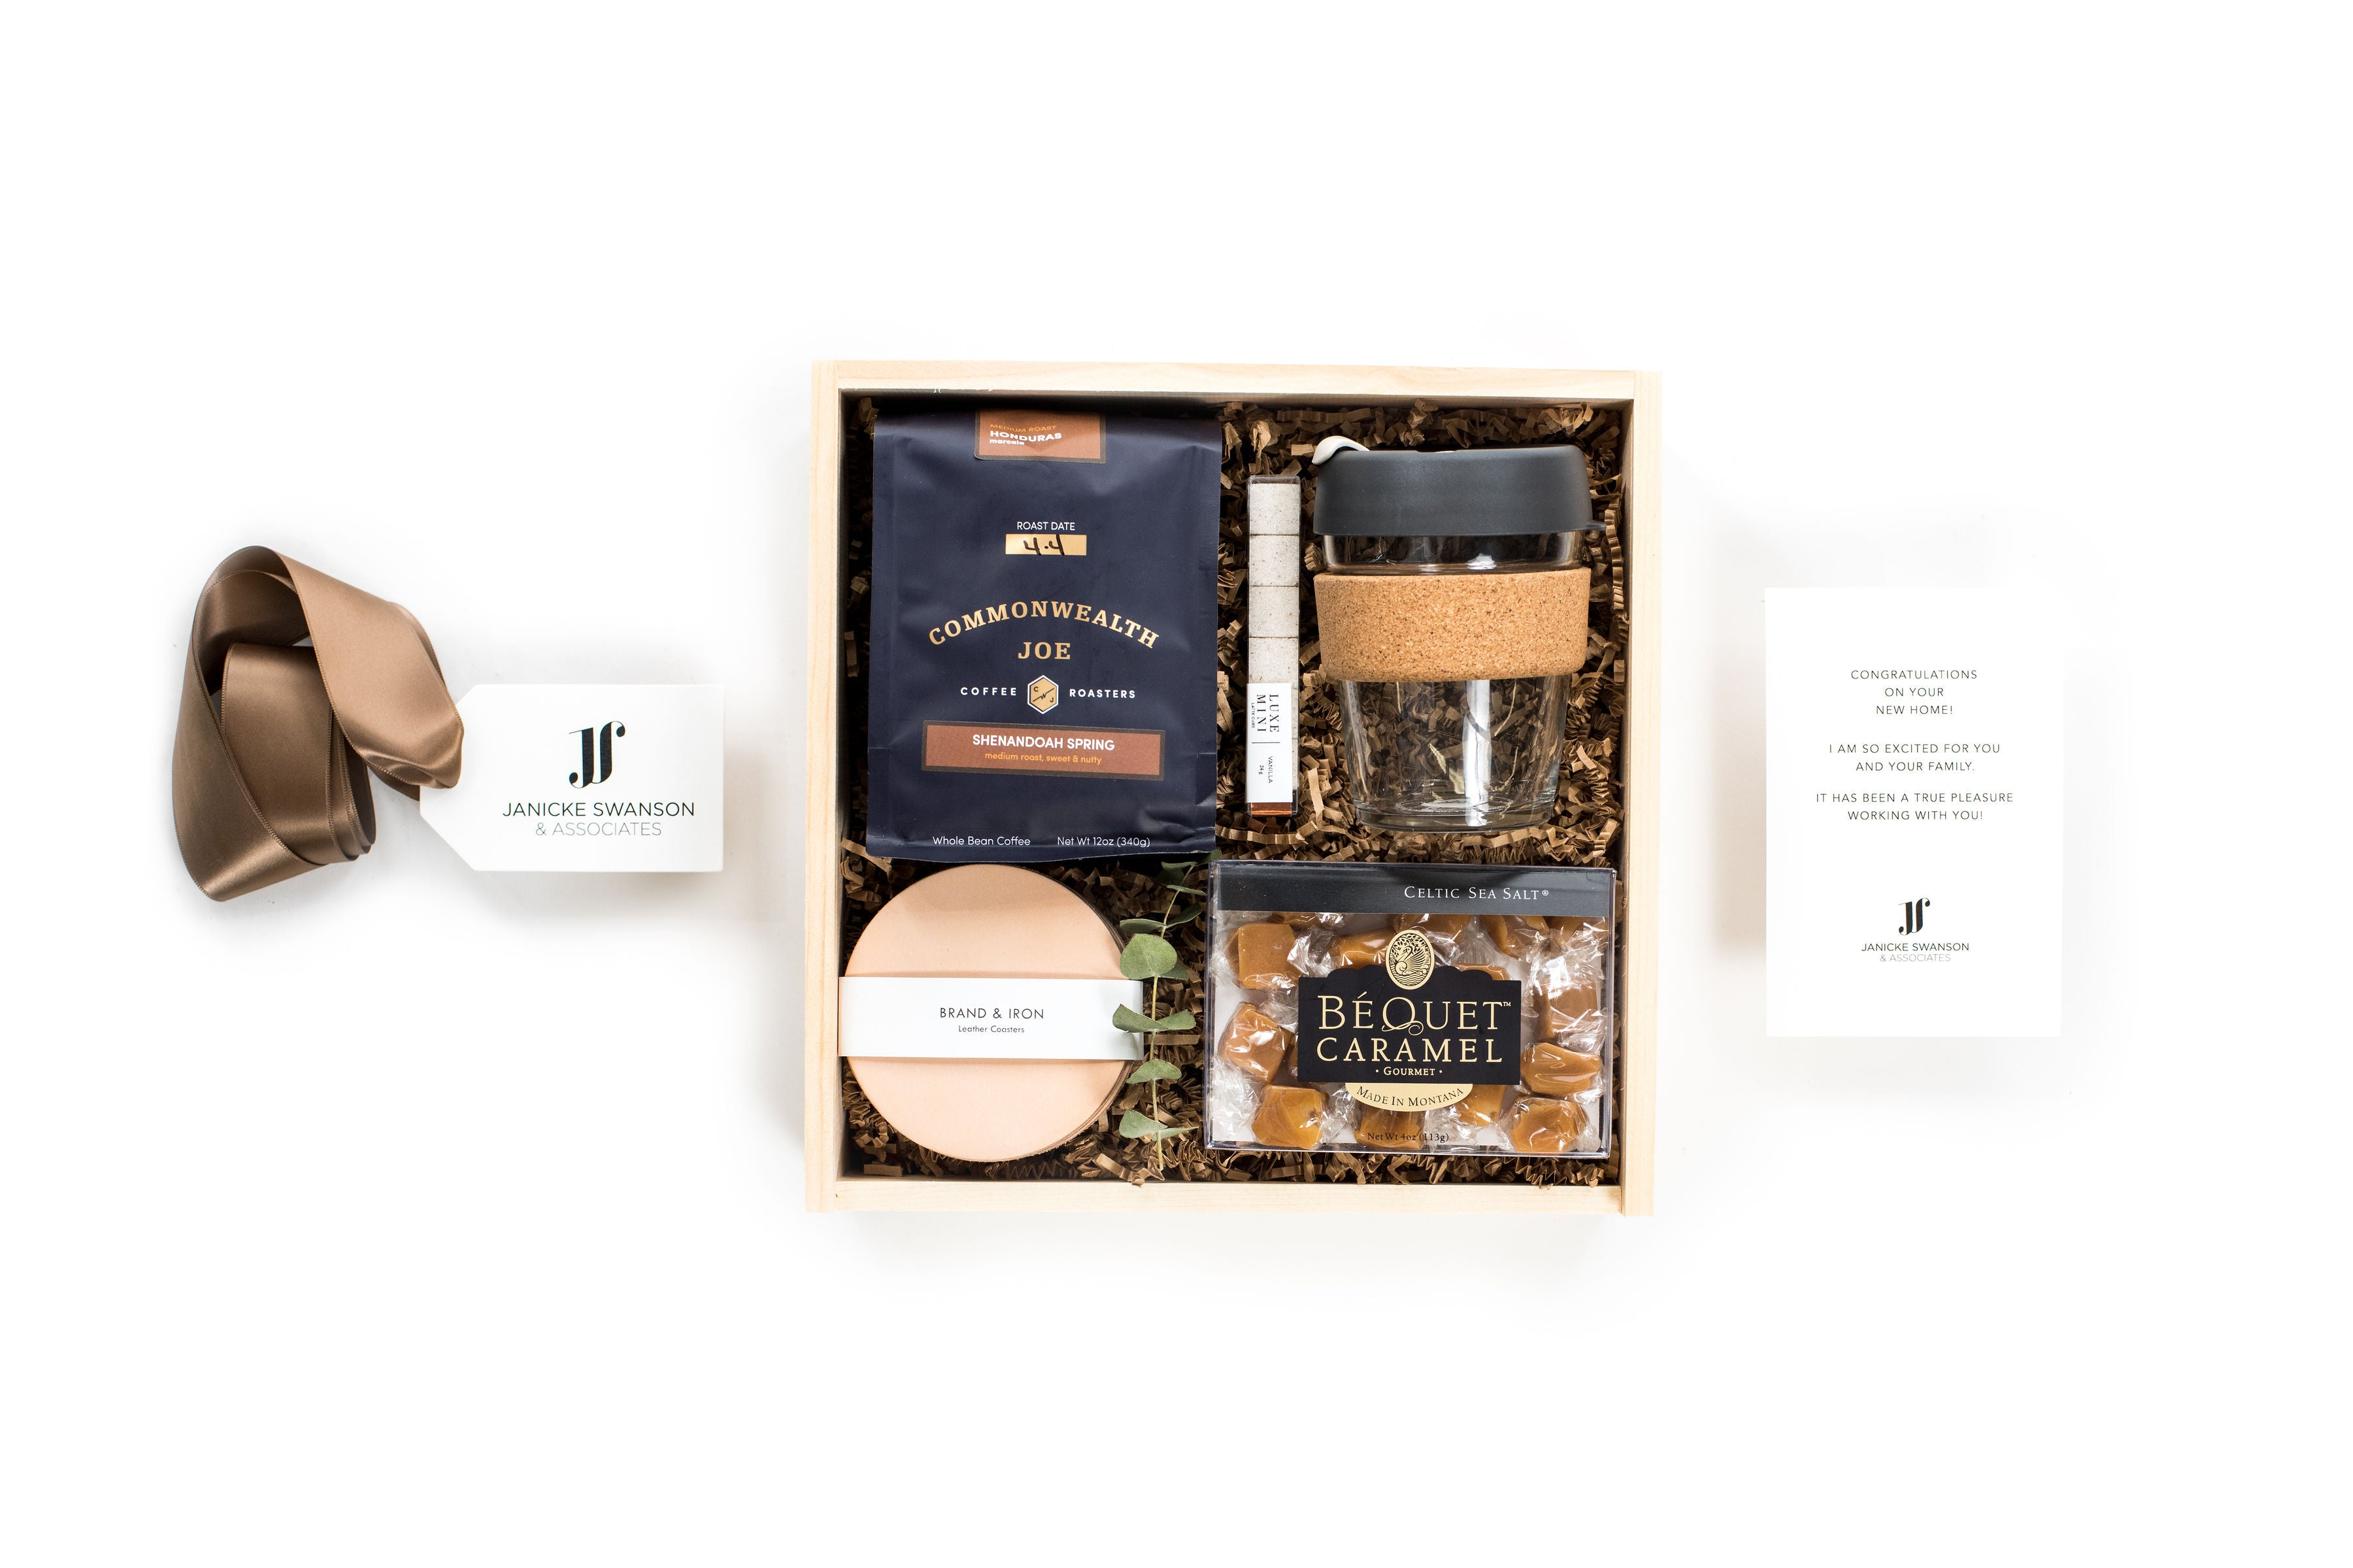 Best curated gift box business for client gifts